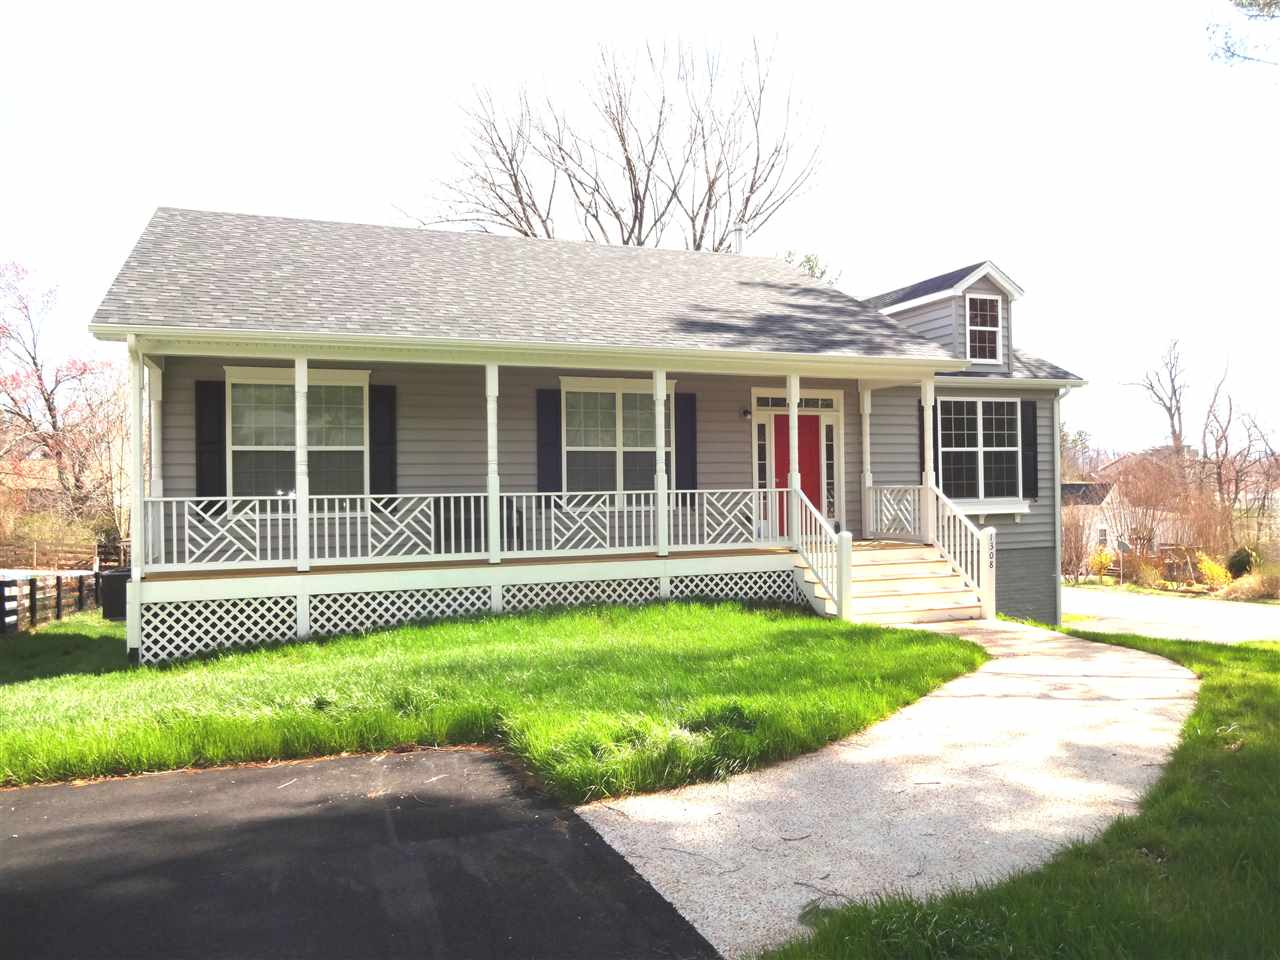 Property for sale at 1308 ORCHARD DR, Crozet,  VA 22932